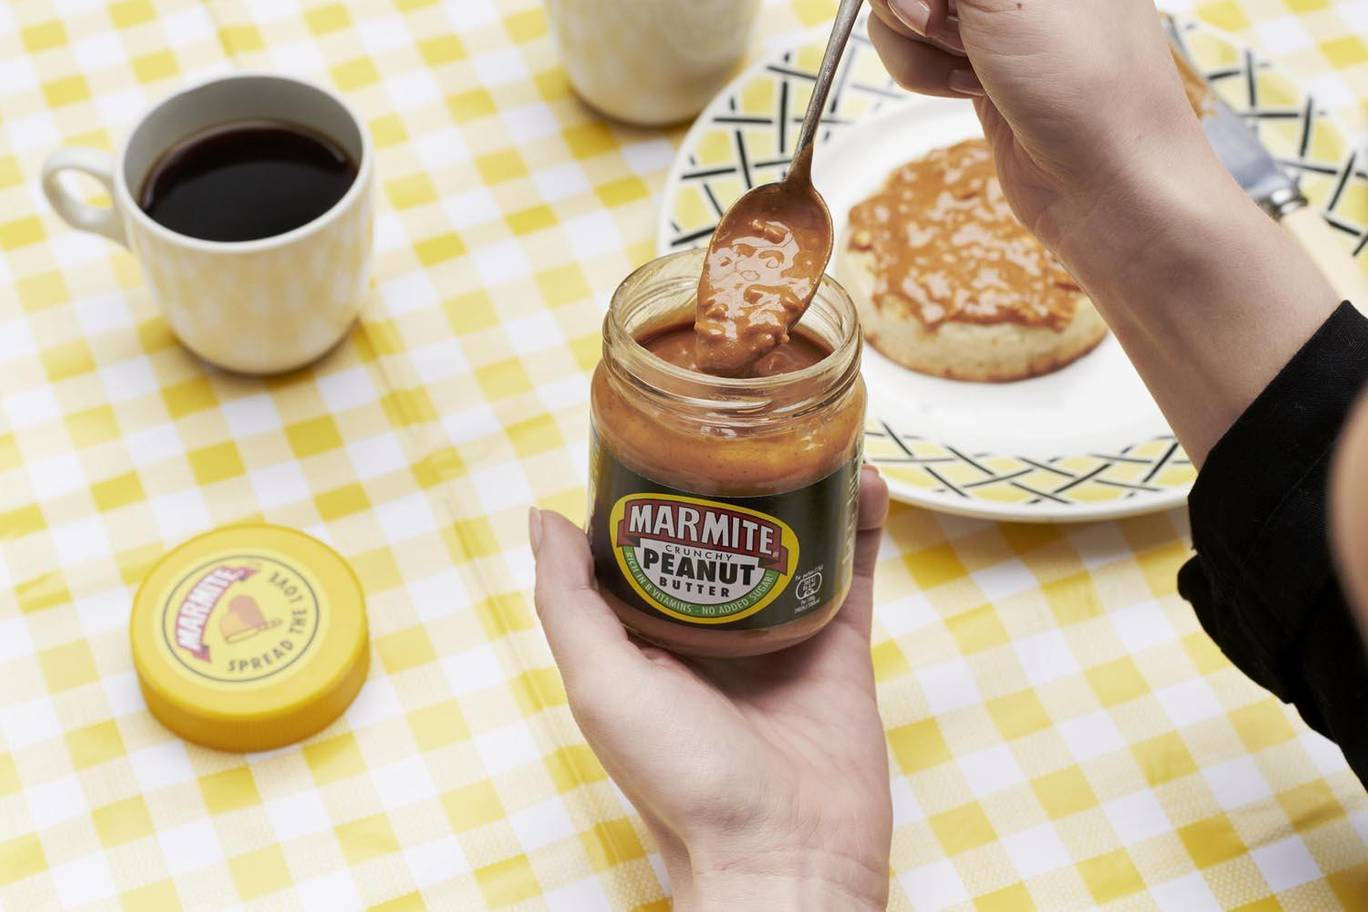 The new flavour will launch in supermarkets from next month. Credit: Marmite